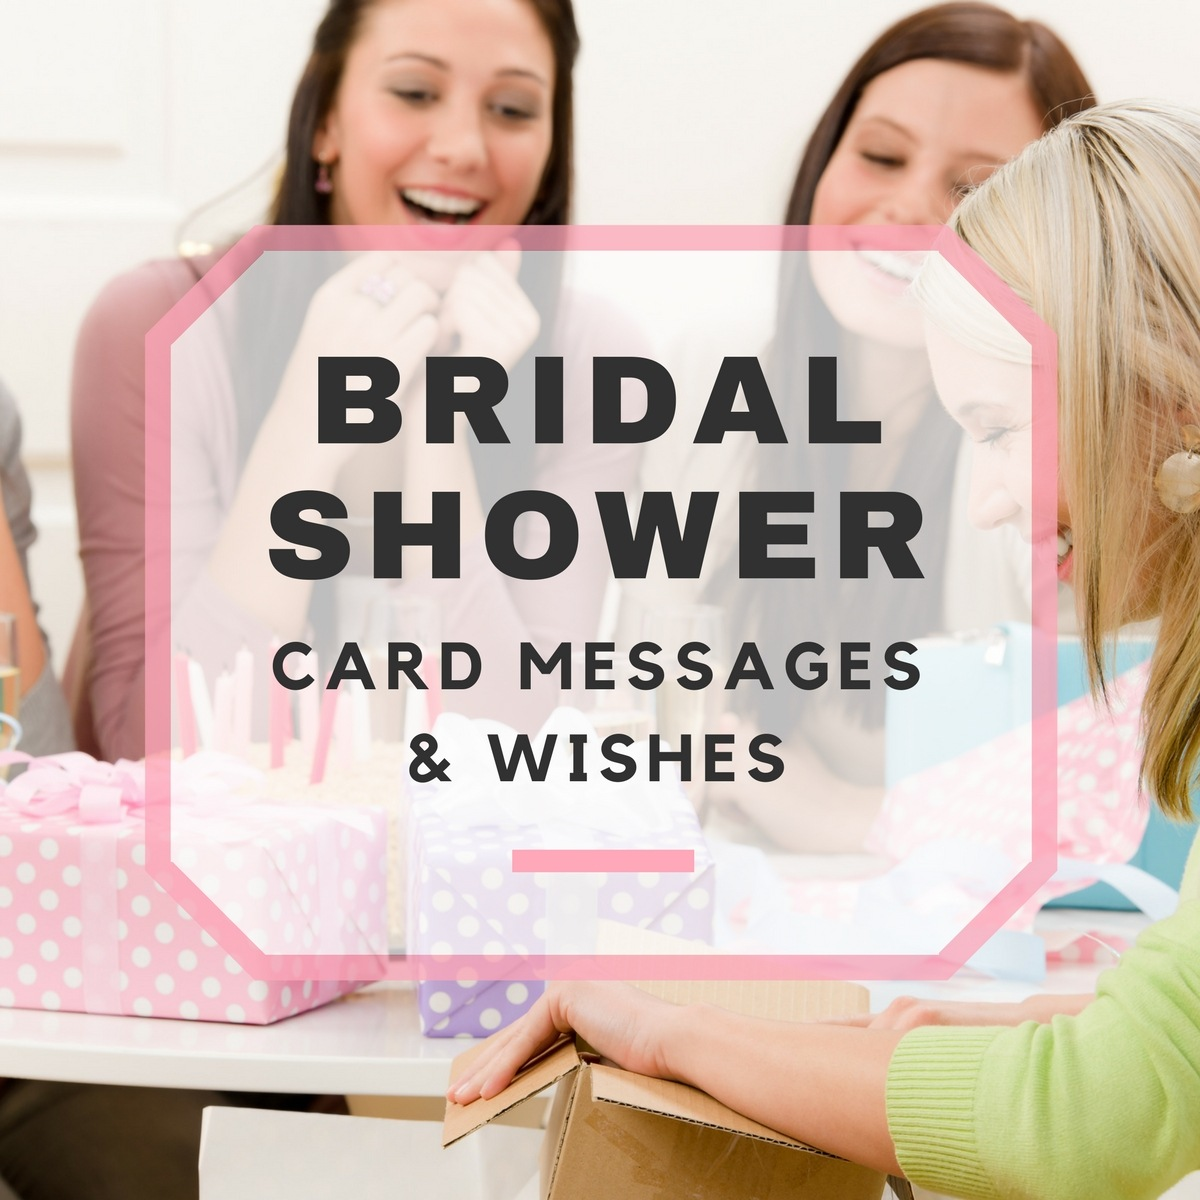 bridal shower card messages wishes